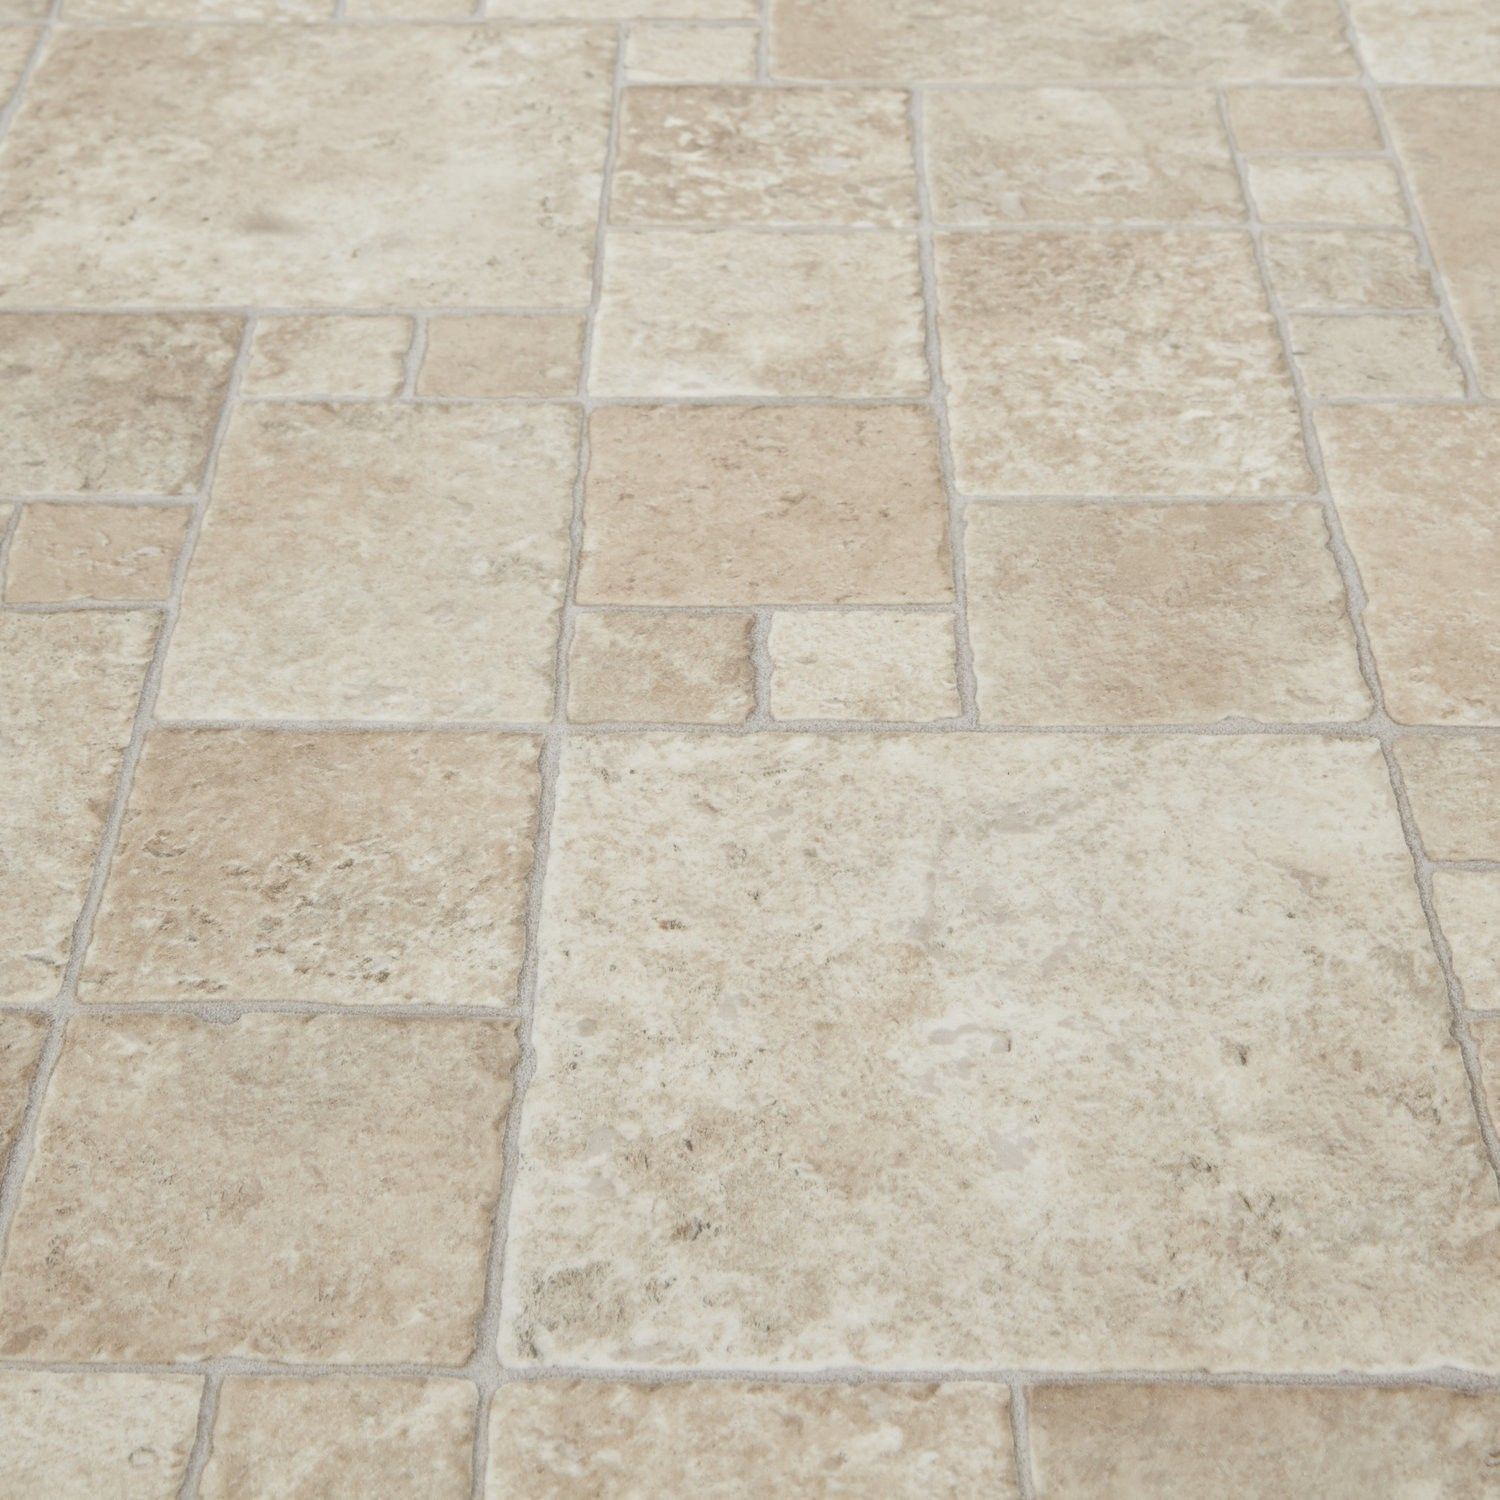 kitchen floor lino Safegrip Toucan Stone Tile Vinyl Flooring